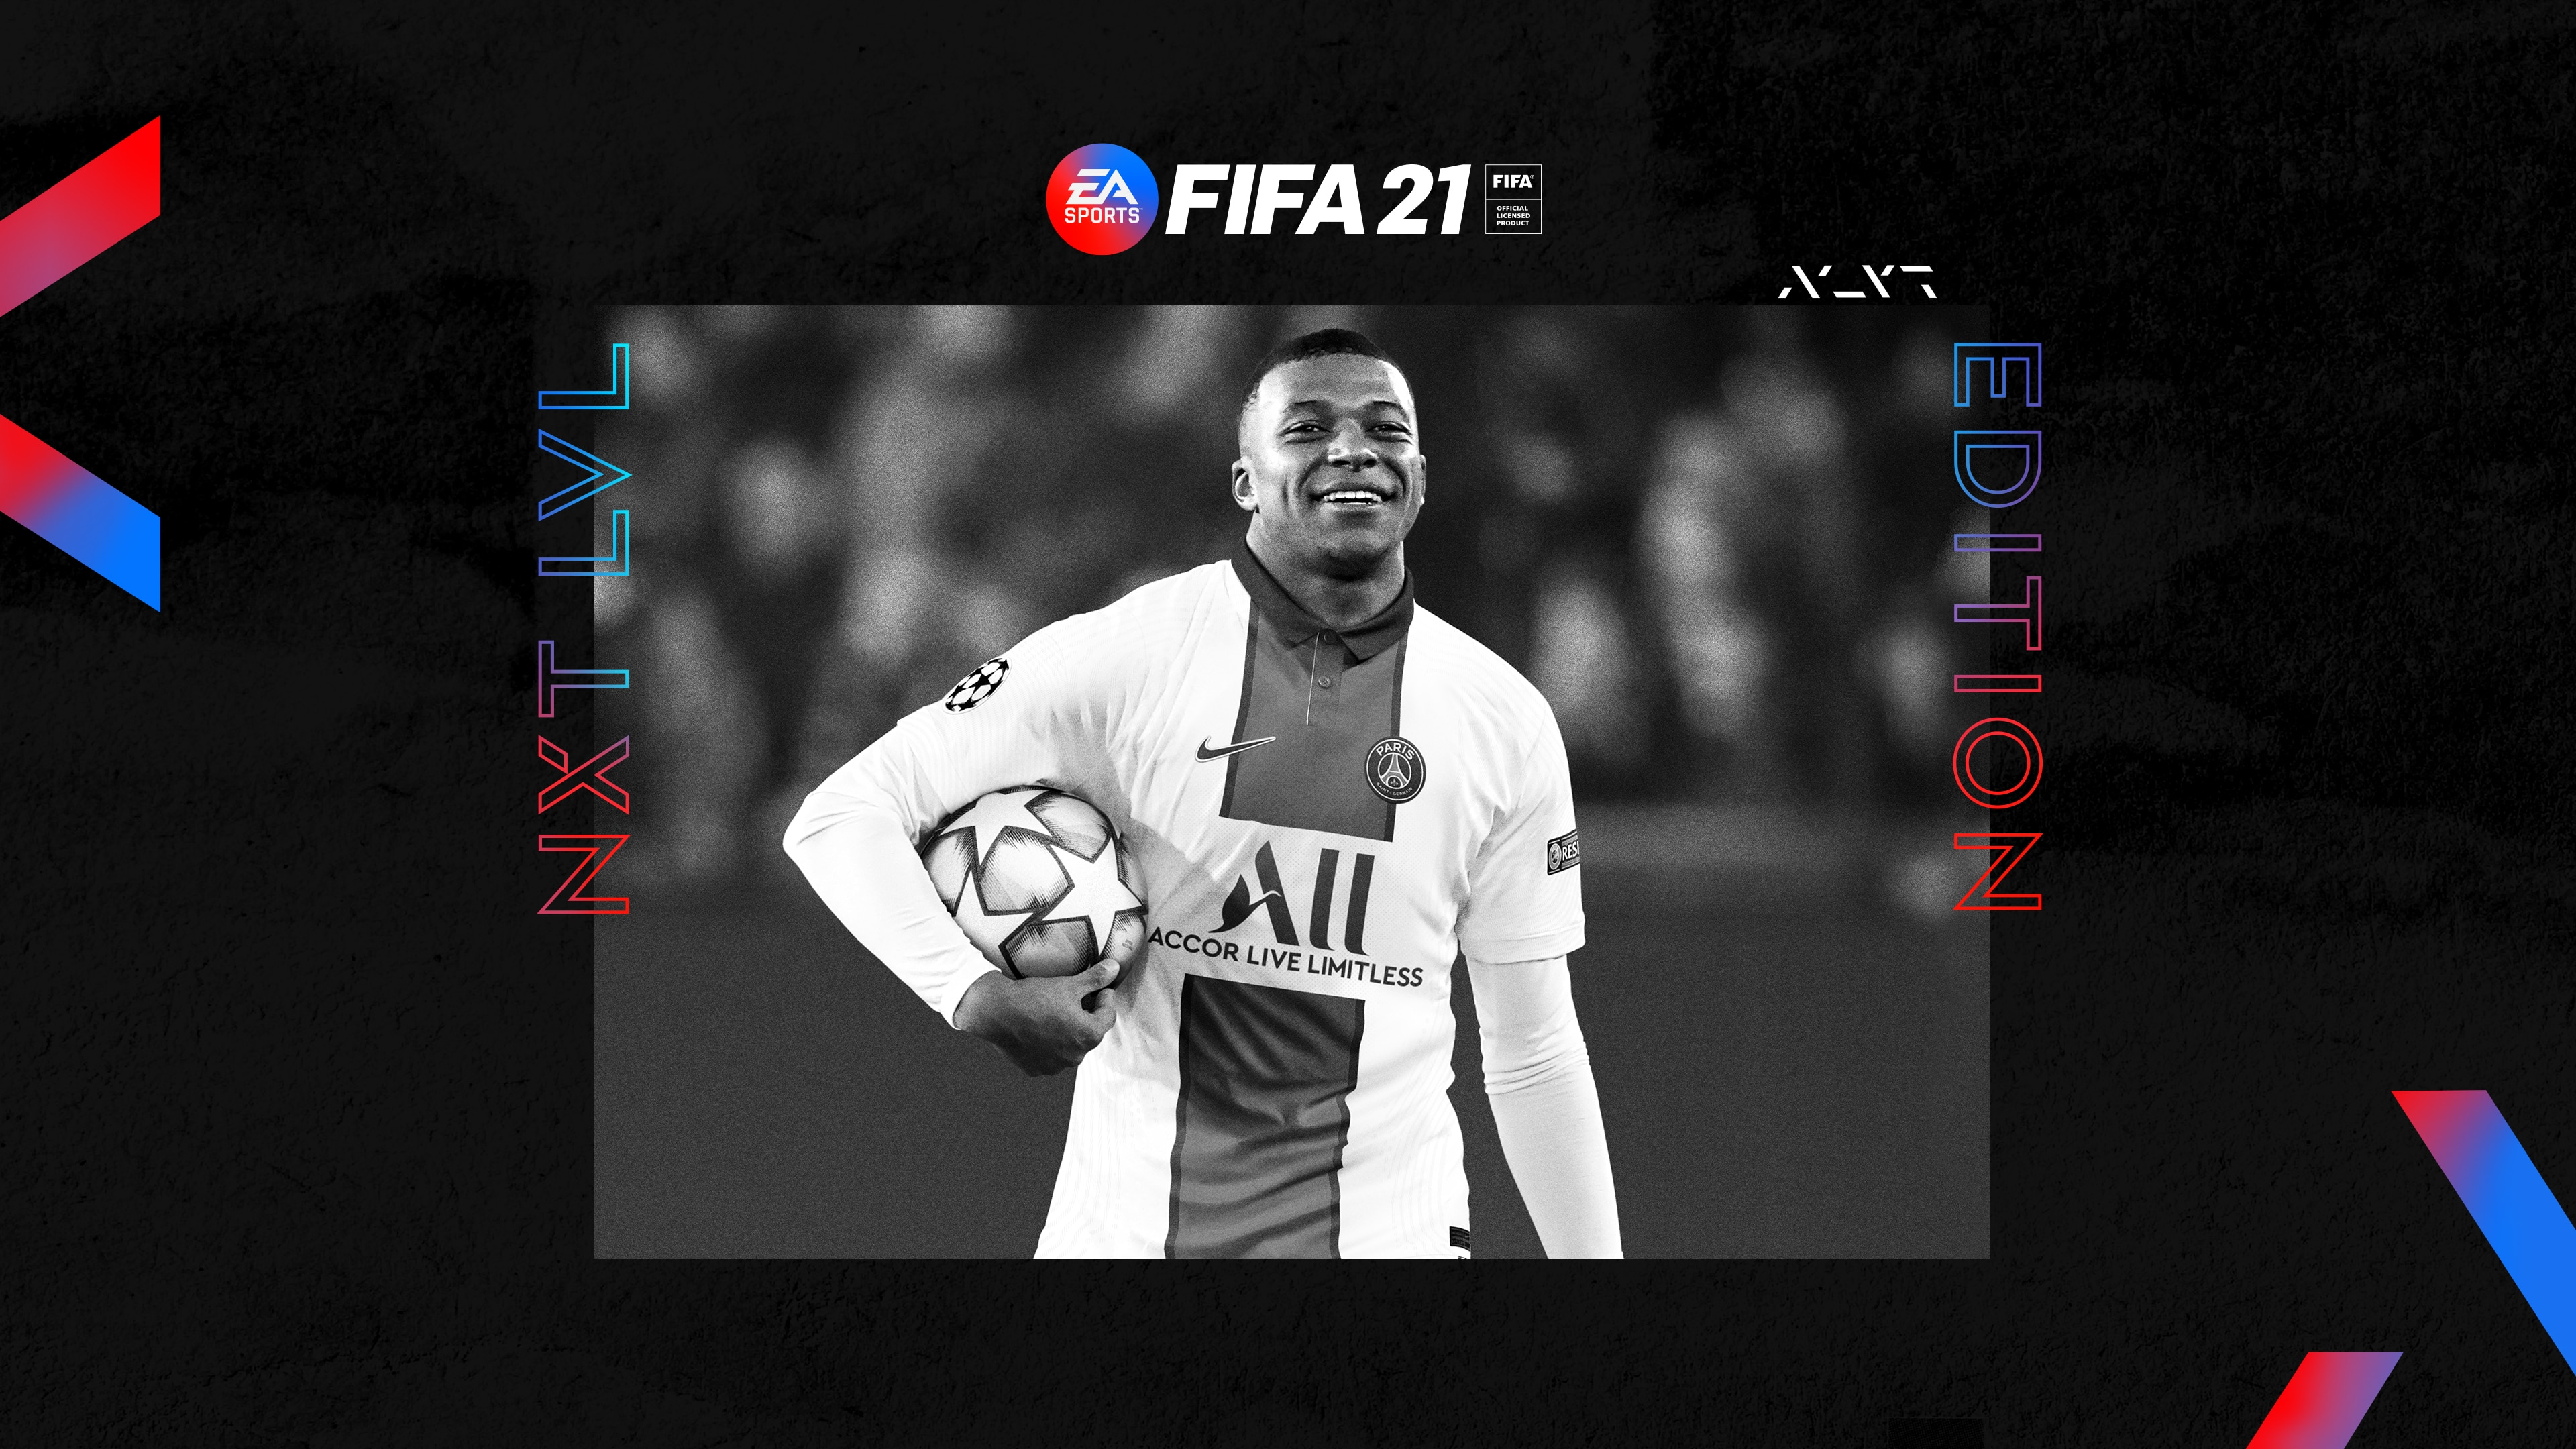 FIFA 21 NXT LVL EDITION PS5™